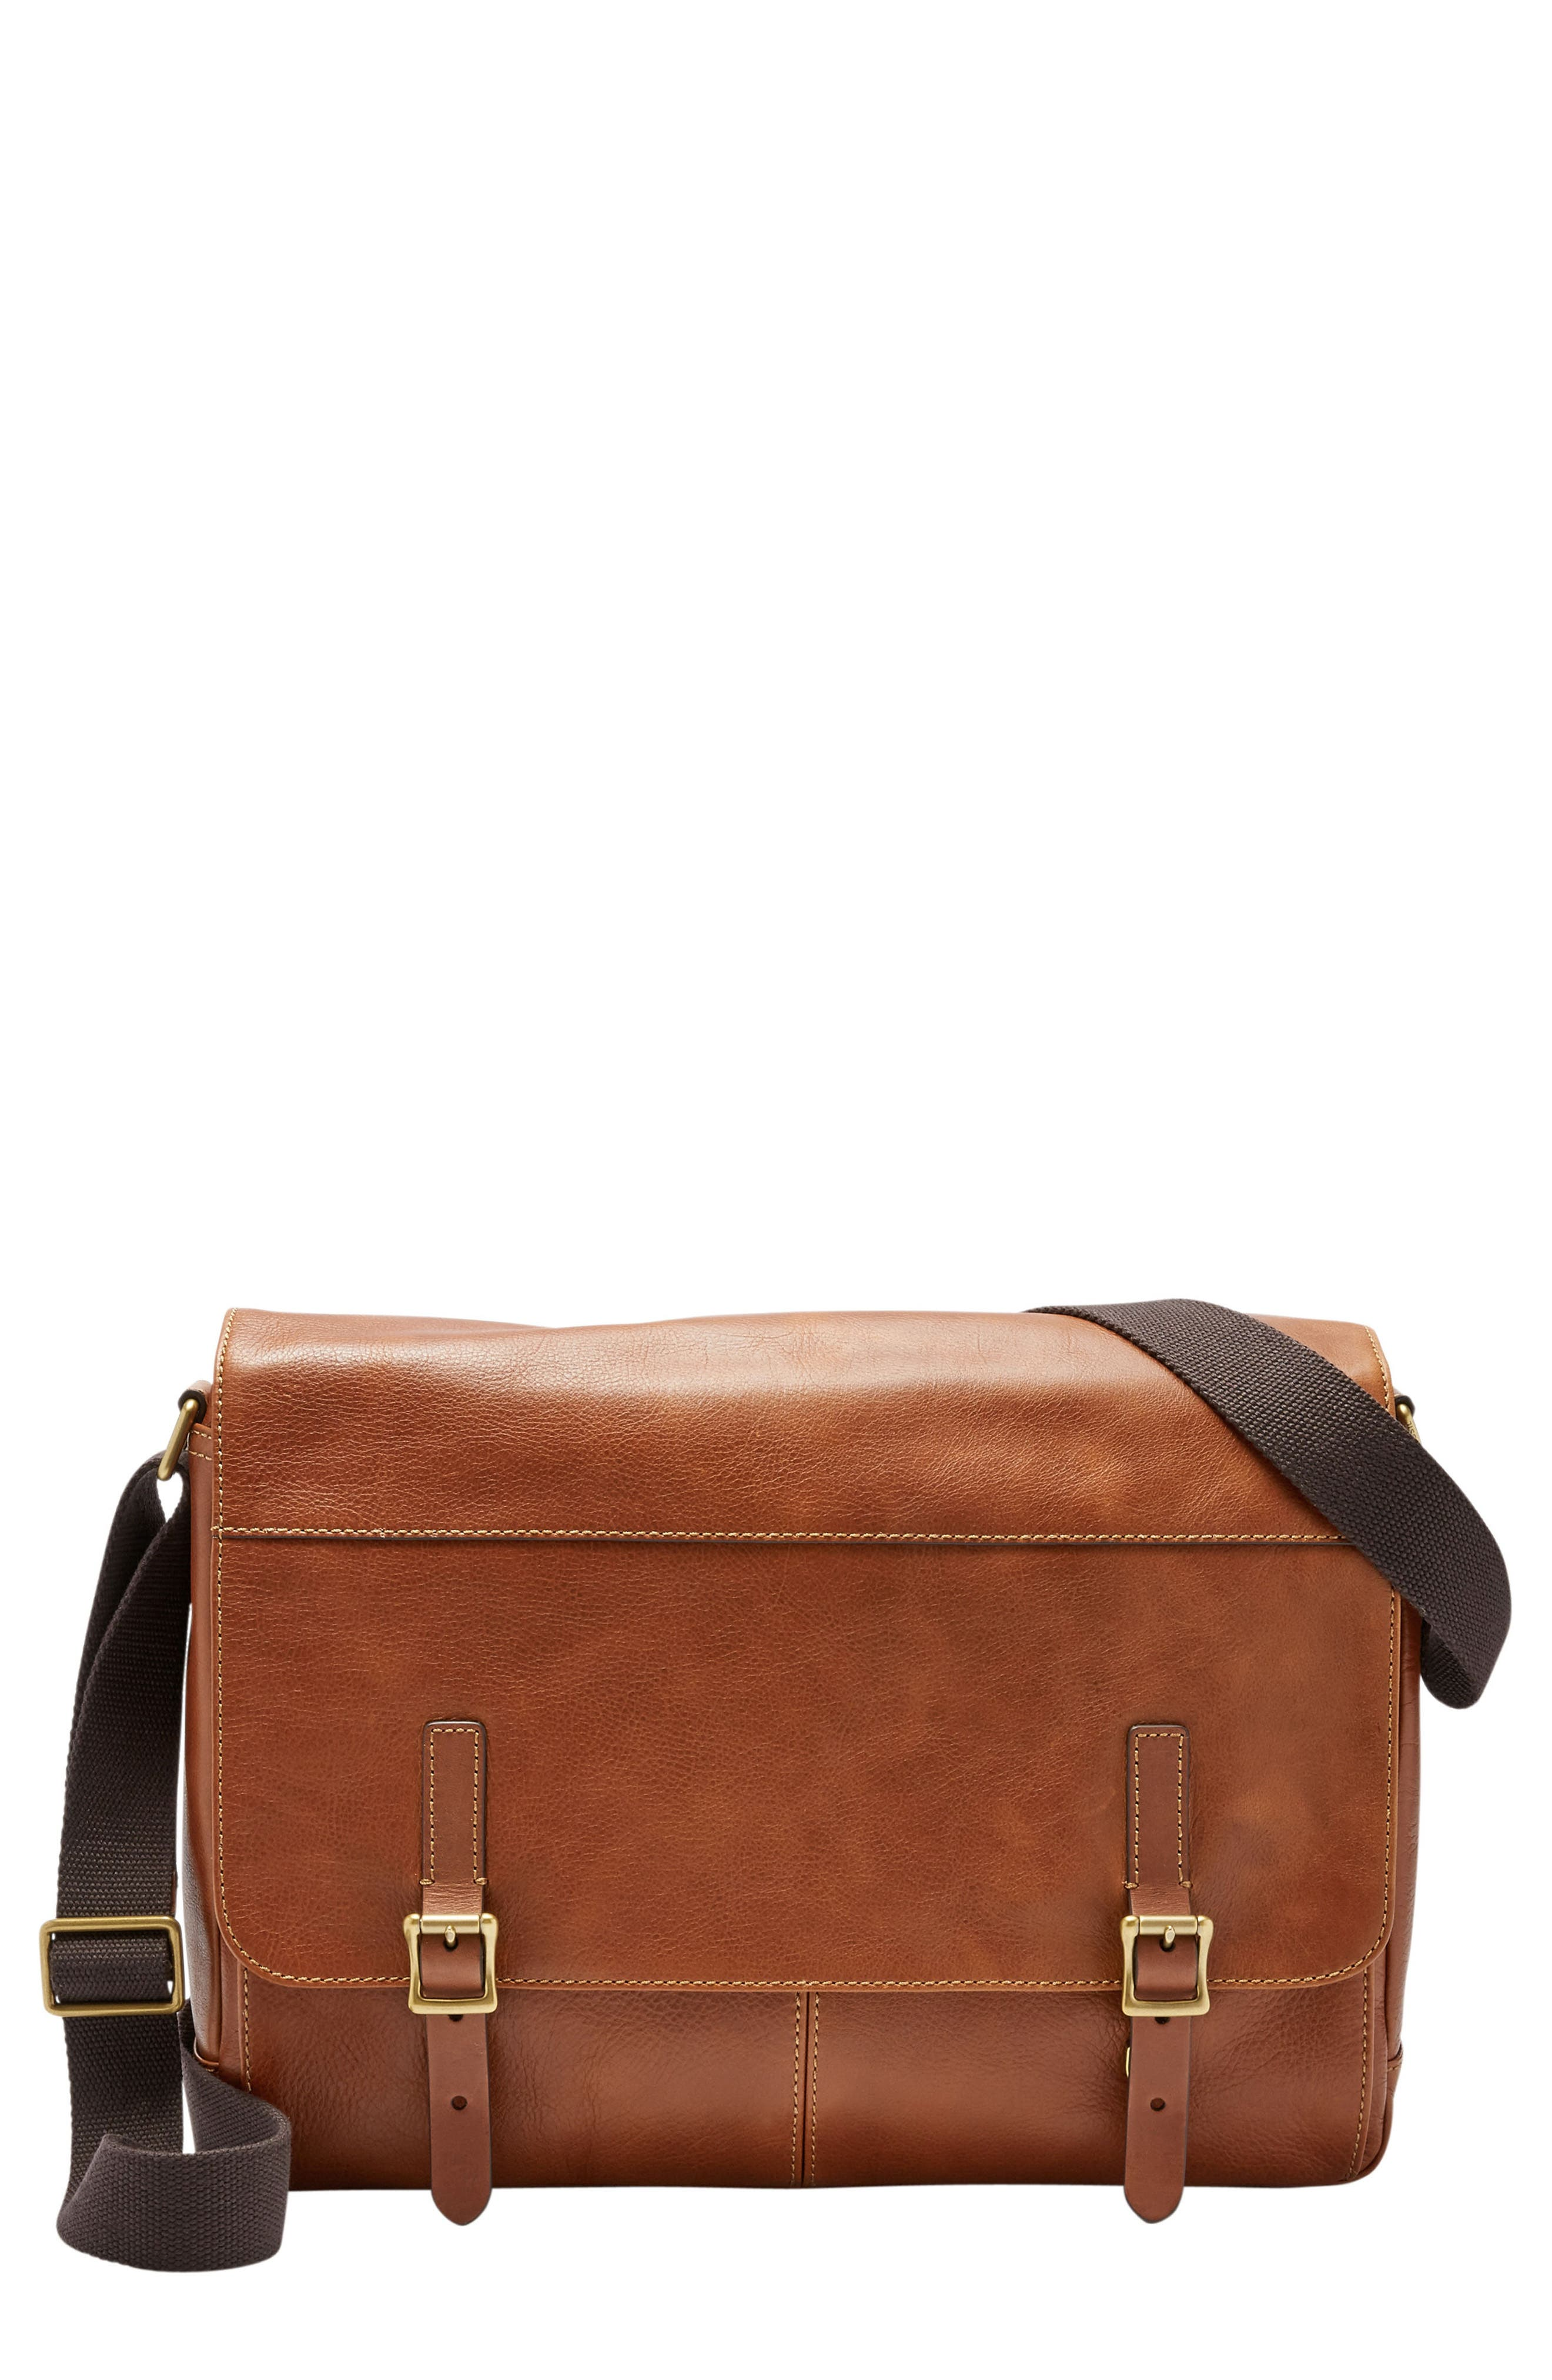 Fossil 'Defender' Leather Messenger Bag